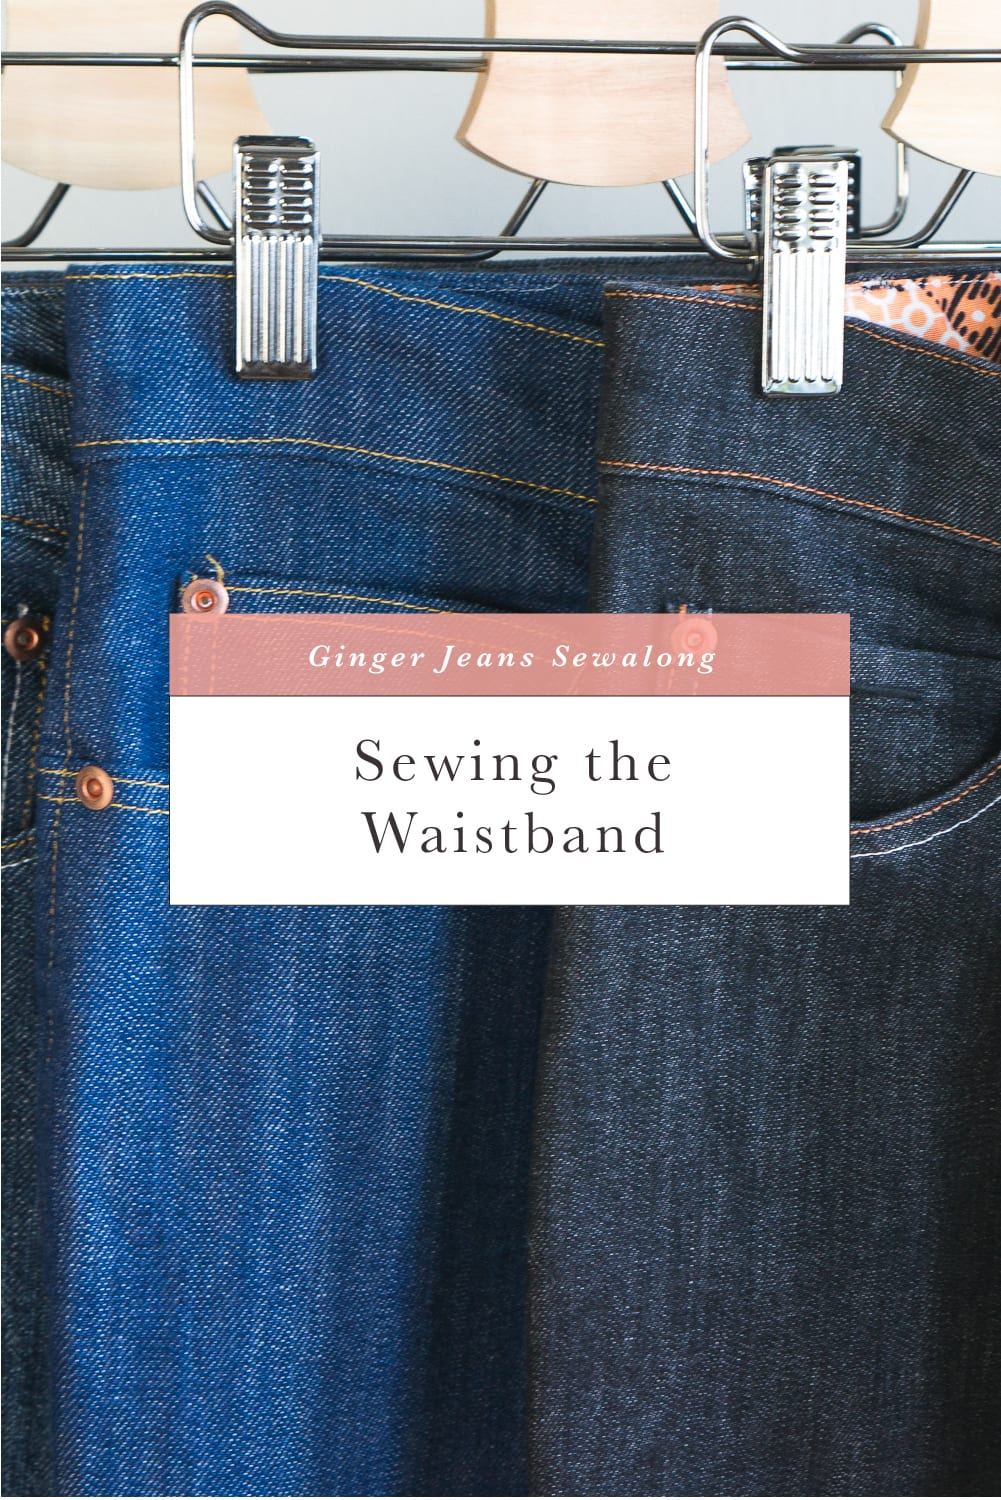 How to sew a jeans waistband // Ginger Jeans Sewalong // Closet Case Patterns